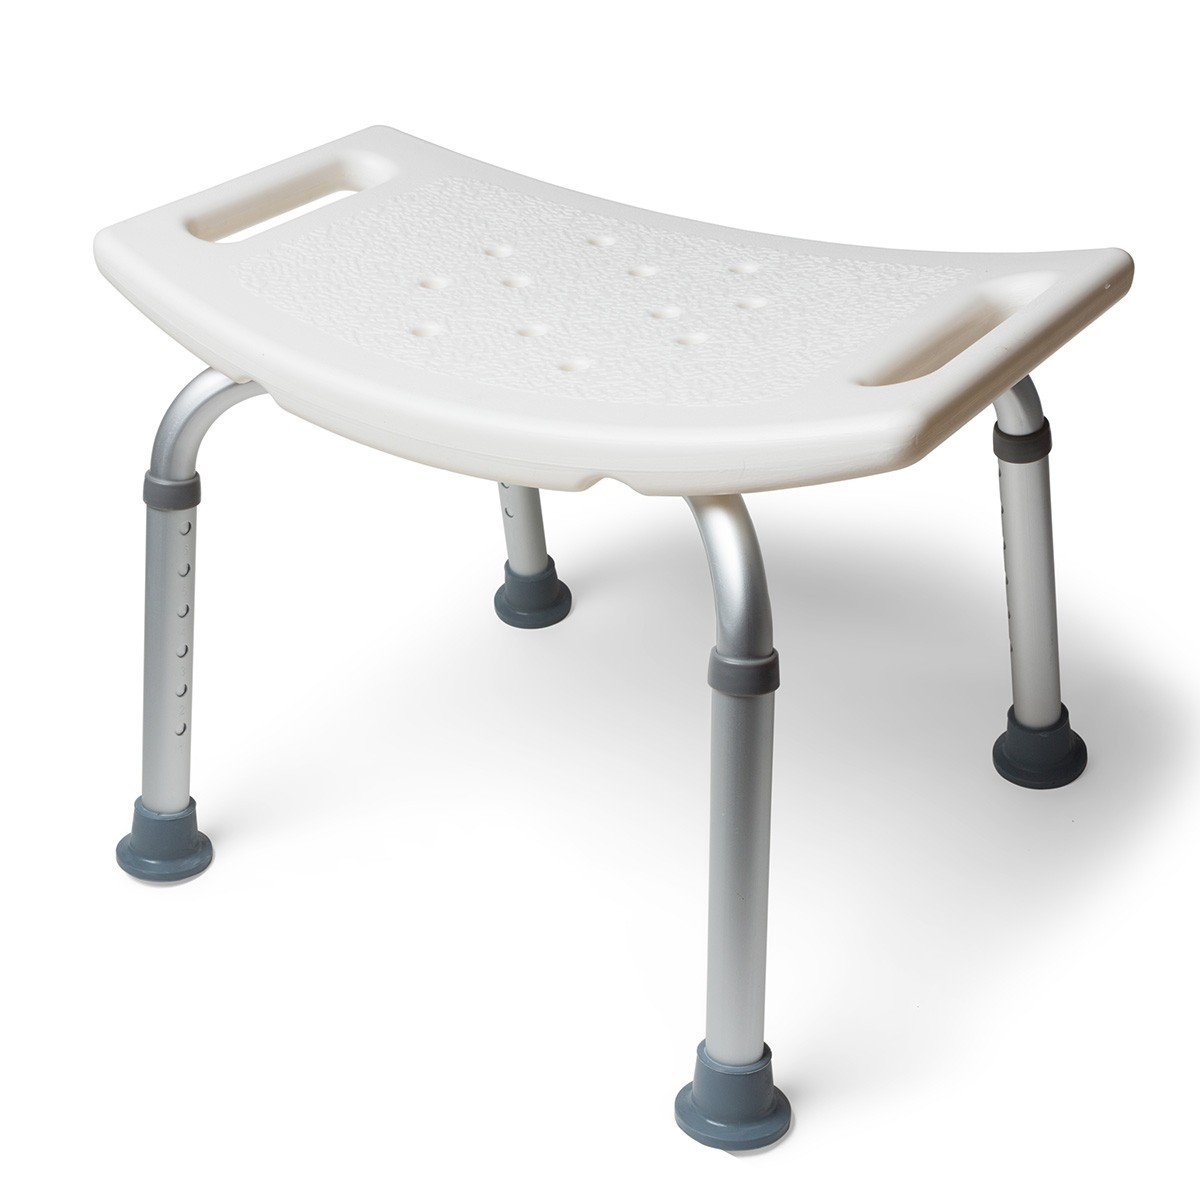 free shipping MedMobile Aluminum Bath Tub Shower Chair with Handles and  Drainage Holes